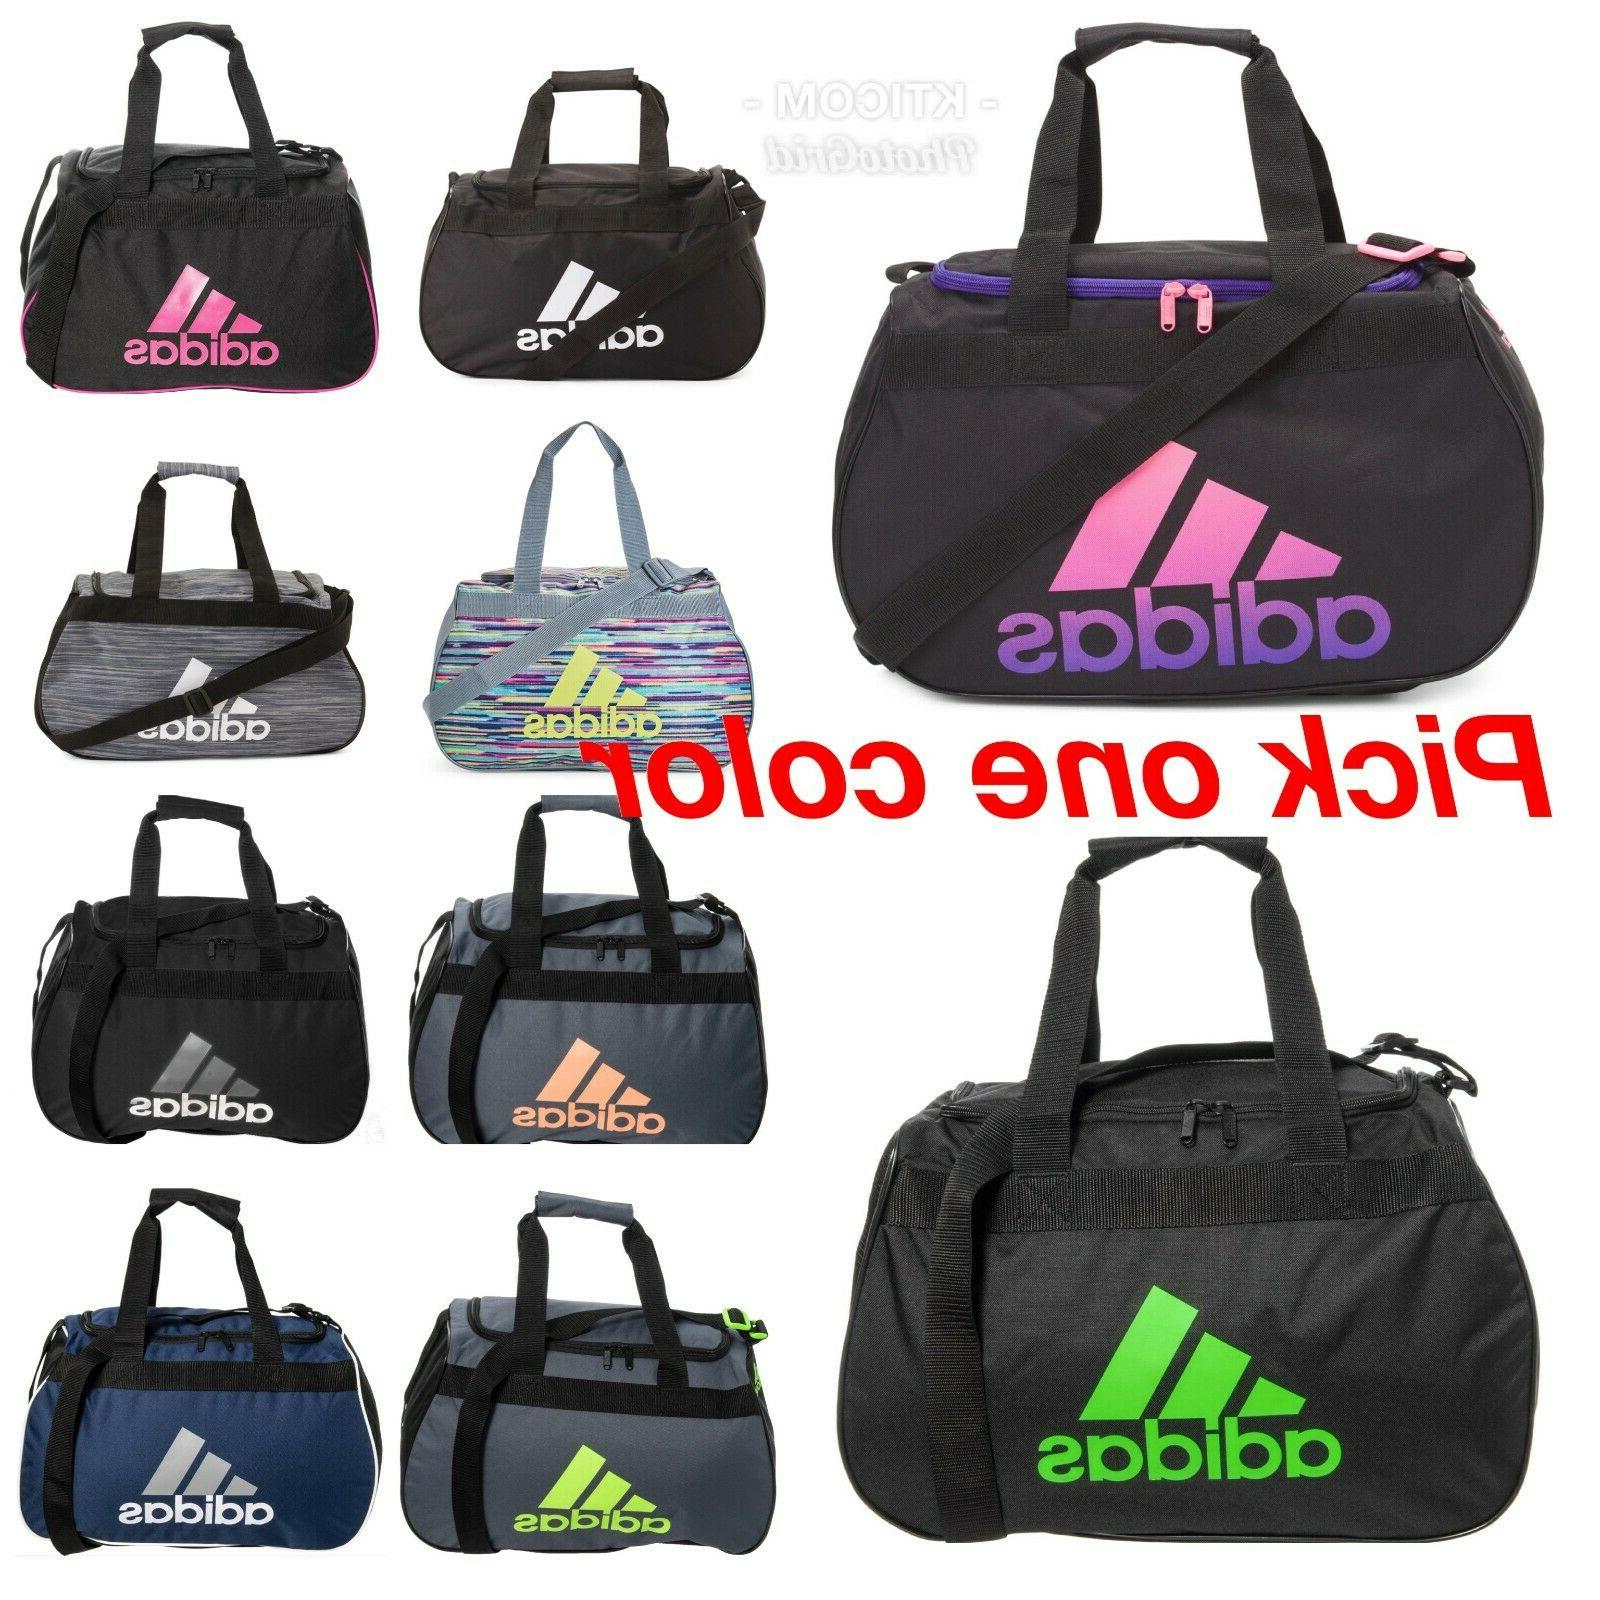 nwt diablo small duffel gym bag travel